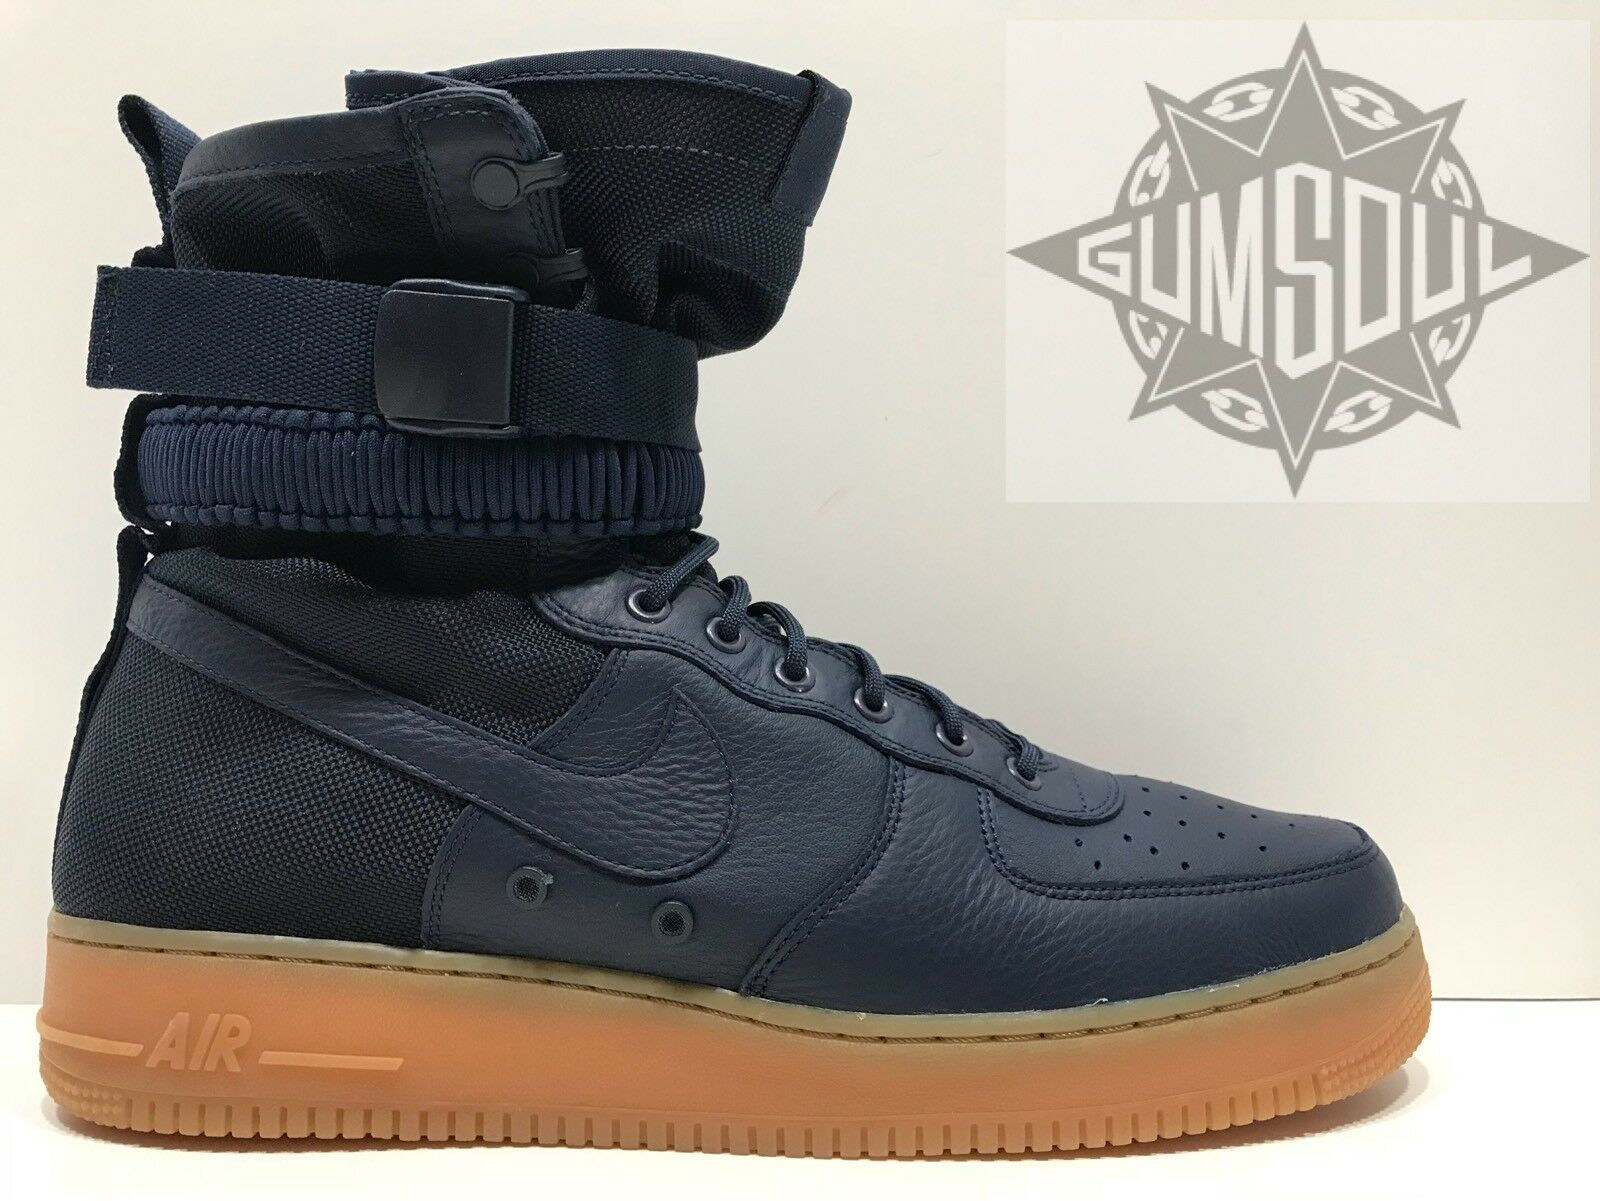 Nike sf af1 speciale campo air gomma force 1 mezzanotte marina gomma air 864024 400 sz 10,5 1db488